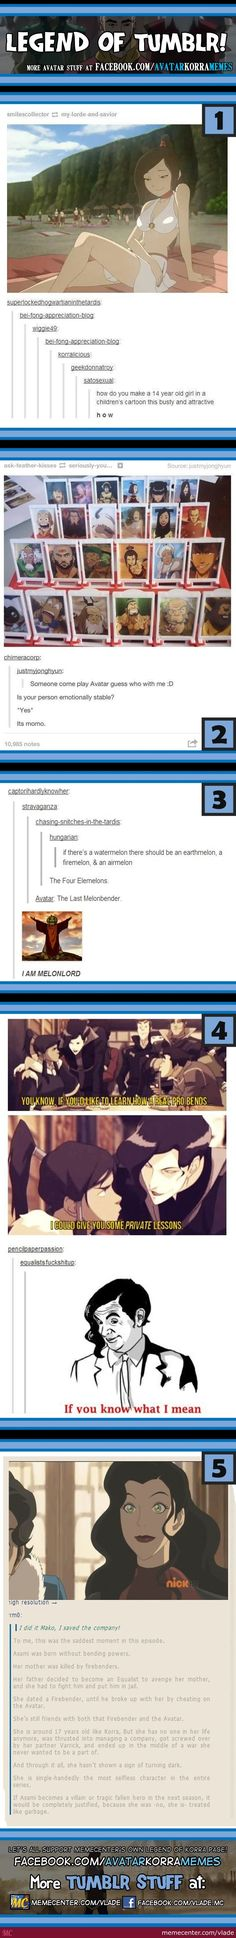 Legend of tumblr <----- Amasi's life gets better though, which is happy....